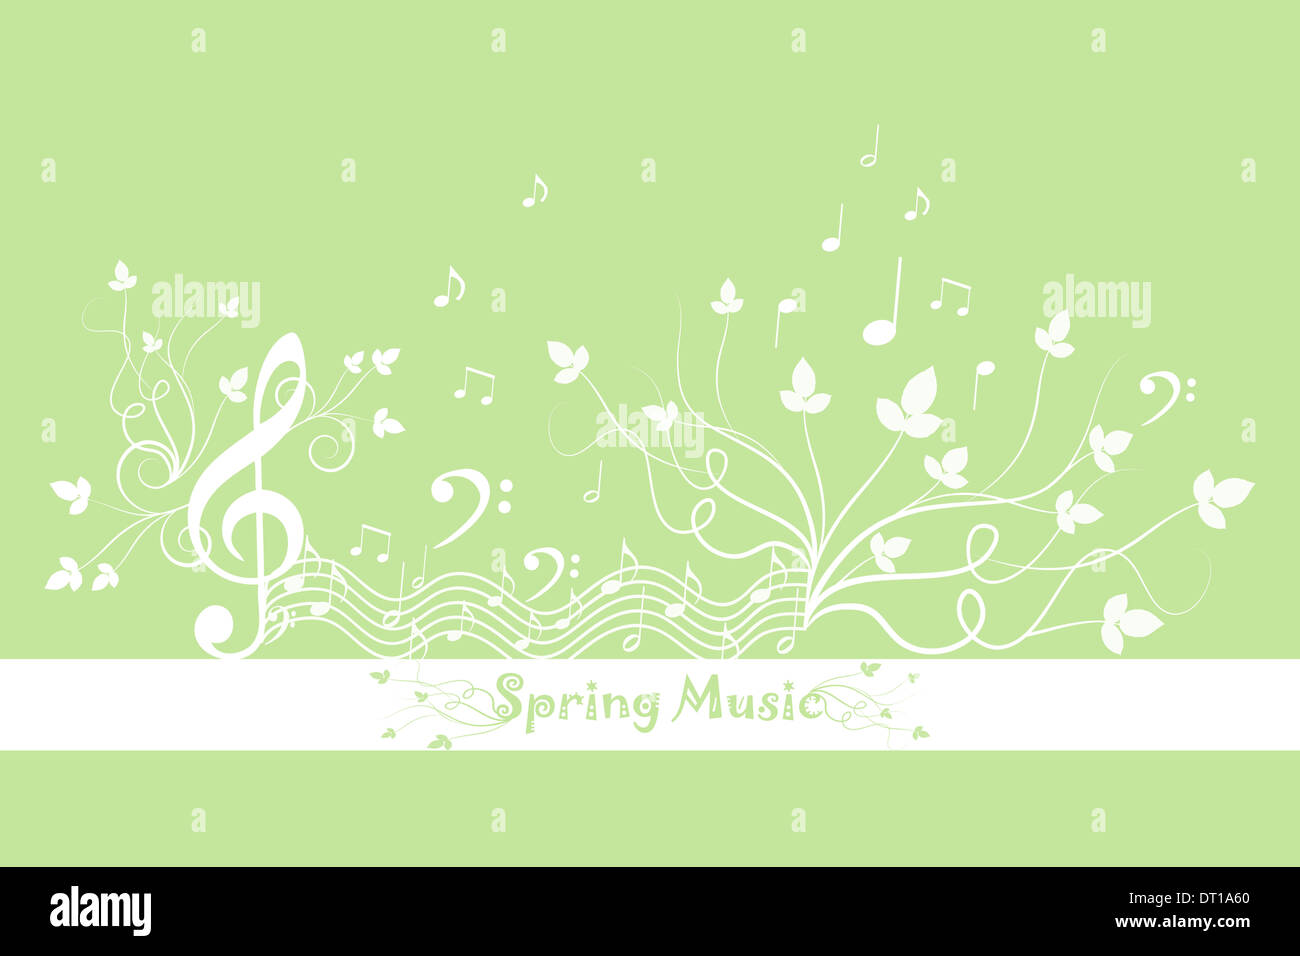 Good Wallpaper Music Spring - spring-floral-and-music-DT1A60  Image_806856.jpg